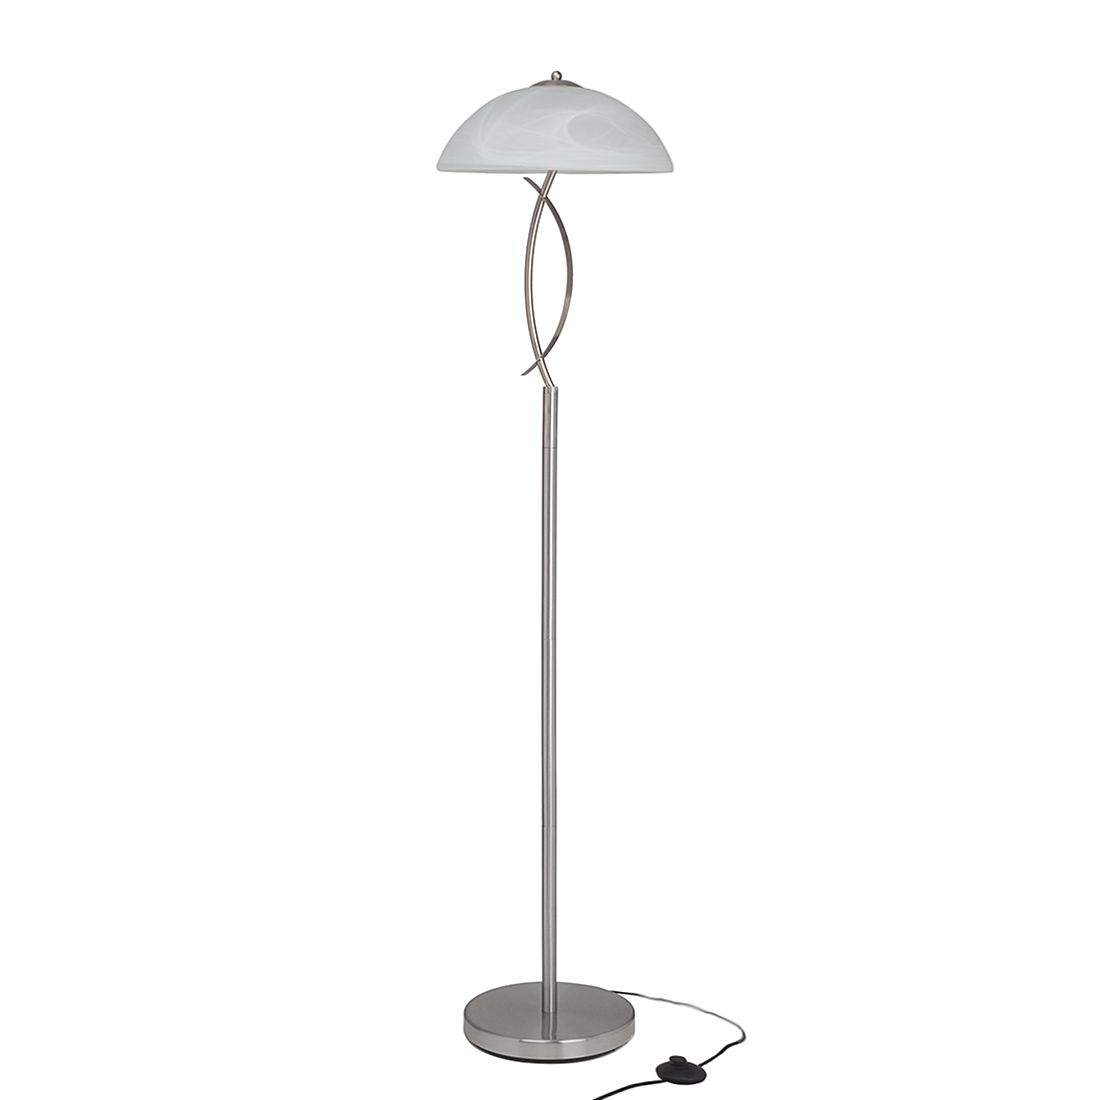 EEK A++, Lampadaire Boston - 2 ampoules, Brilliant